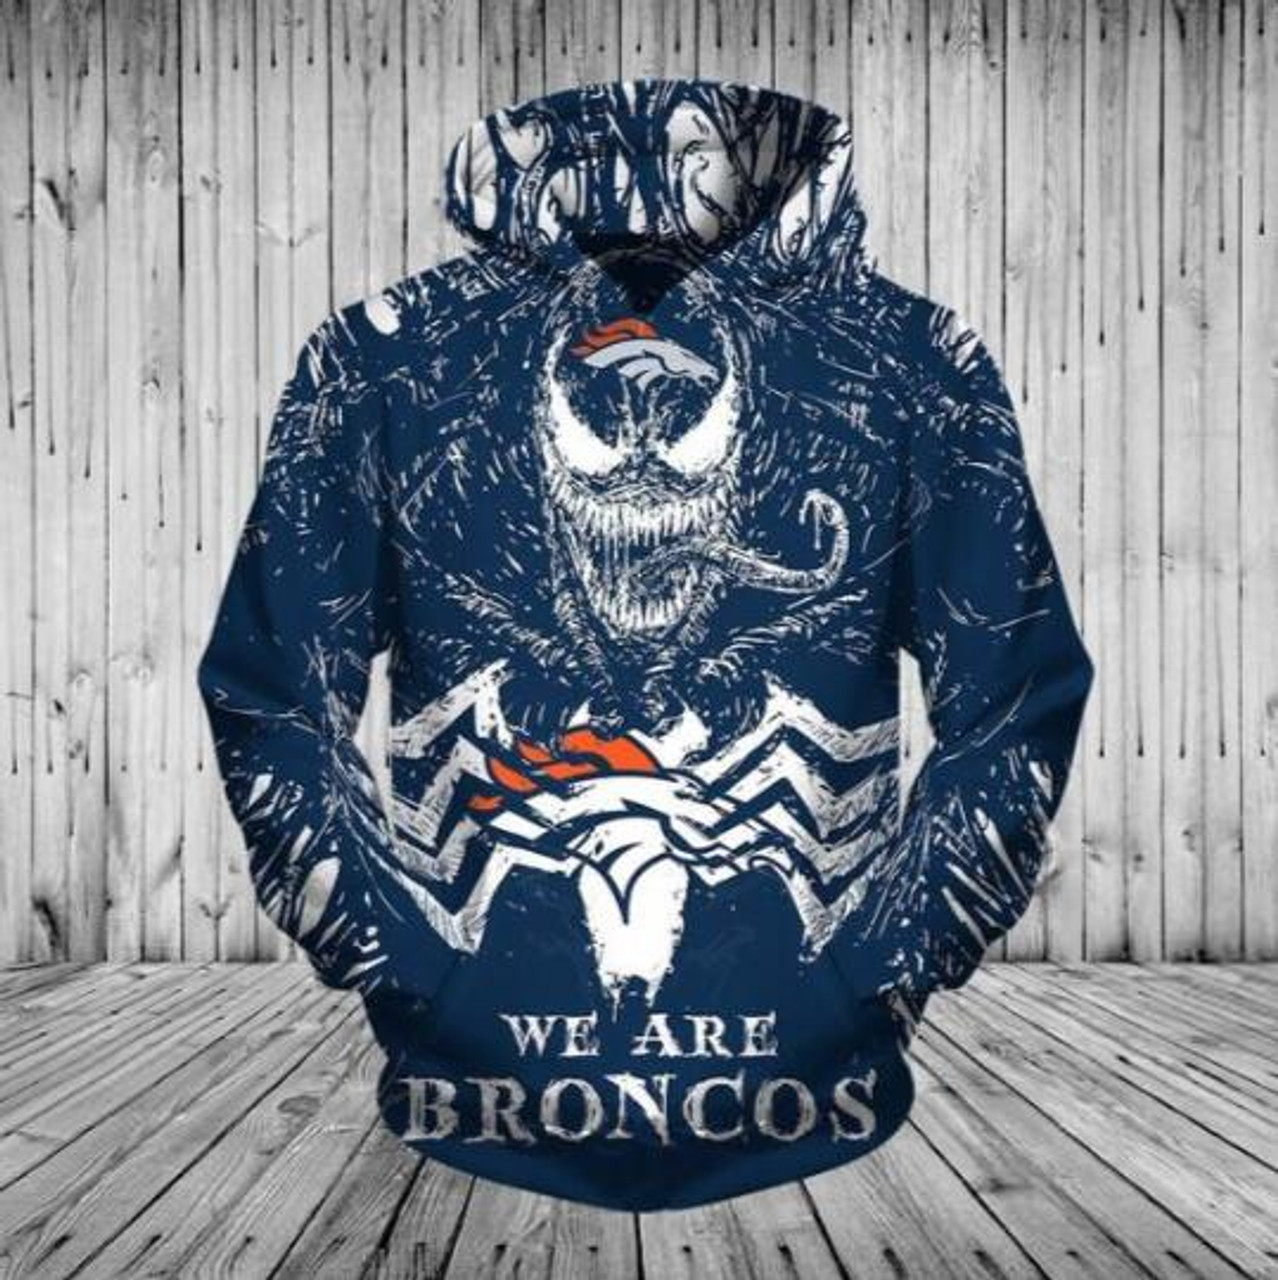 best service 929e0 2458e **(OFFICIALLY-LICENSED-N.F.L.DENVER-BRONCOS,CLASSIC-VENOM-HORROR-MOVIE-CHARACTER  & WE-ARE-DENVER-BRONCOS/NICE-DETAILED-PREMIUM-CUSTOM-3D-GRAPHIC-PRINT...